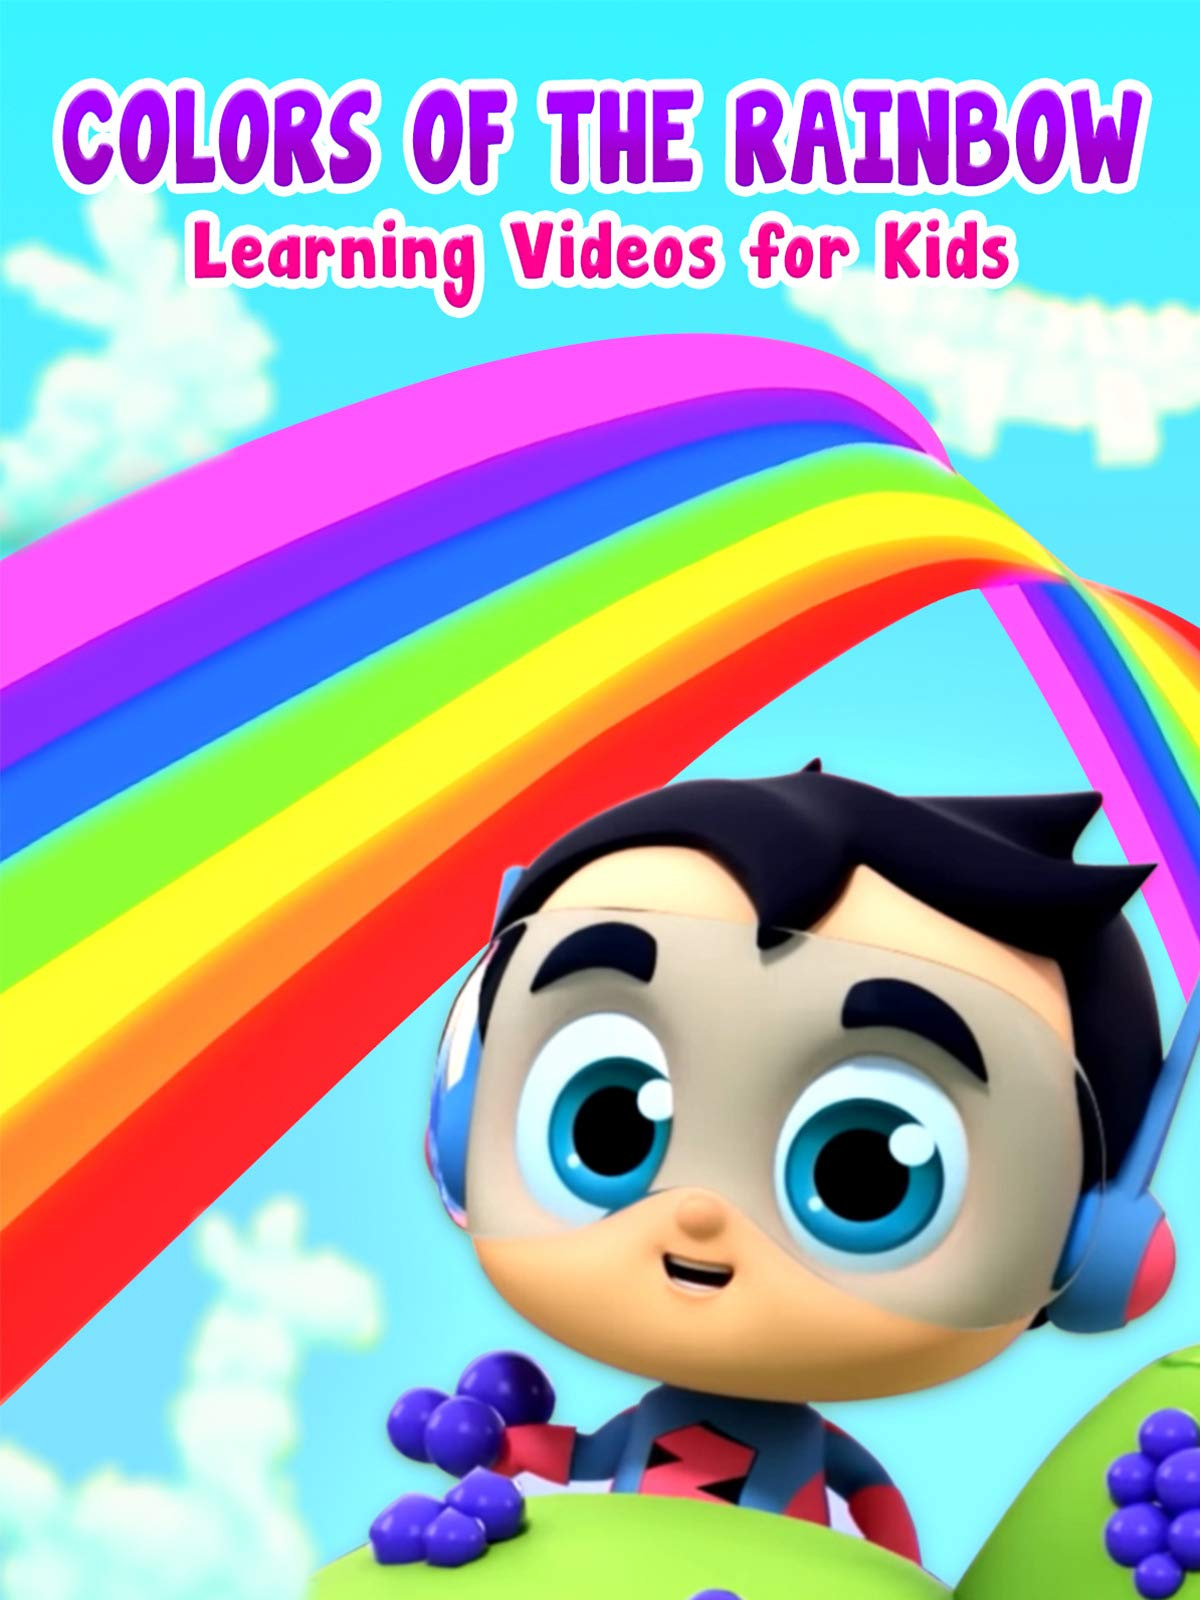 Colors of The Rainbow - Learning Videos for Kids on Amazon Prime Video UK